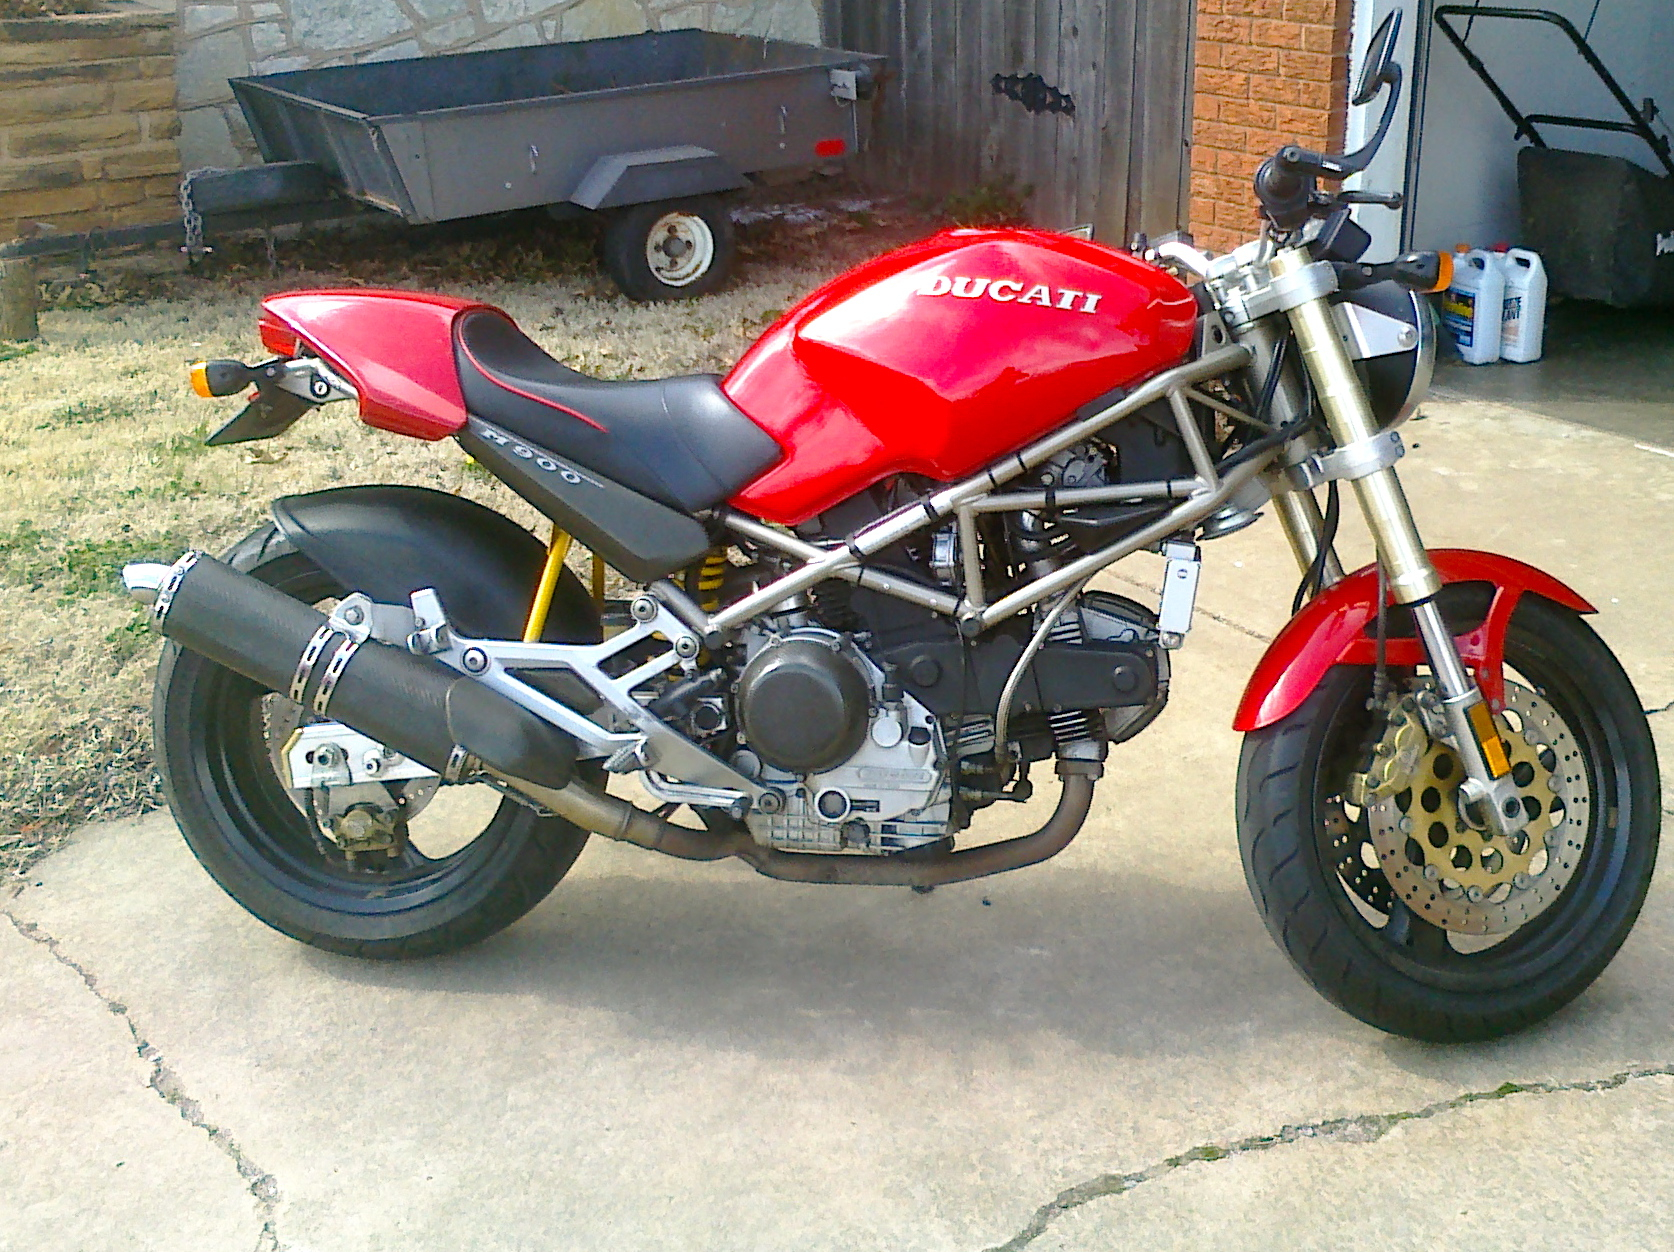 Ducati 750 SS 1994 images #78892